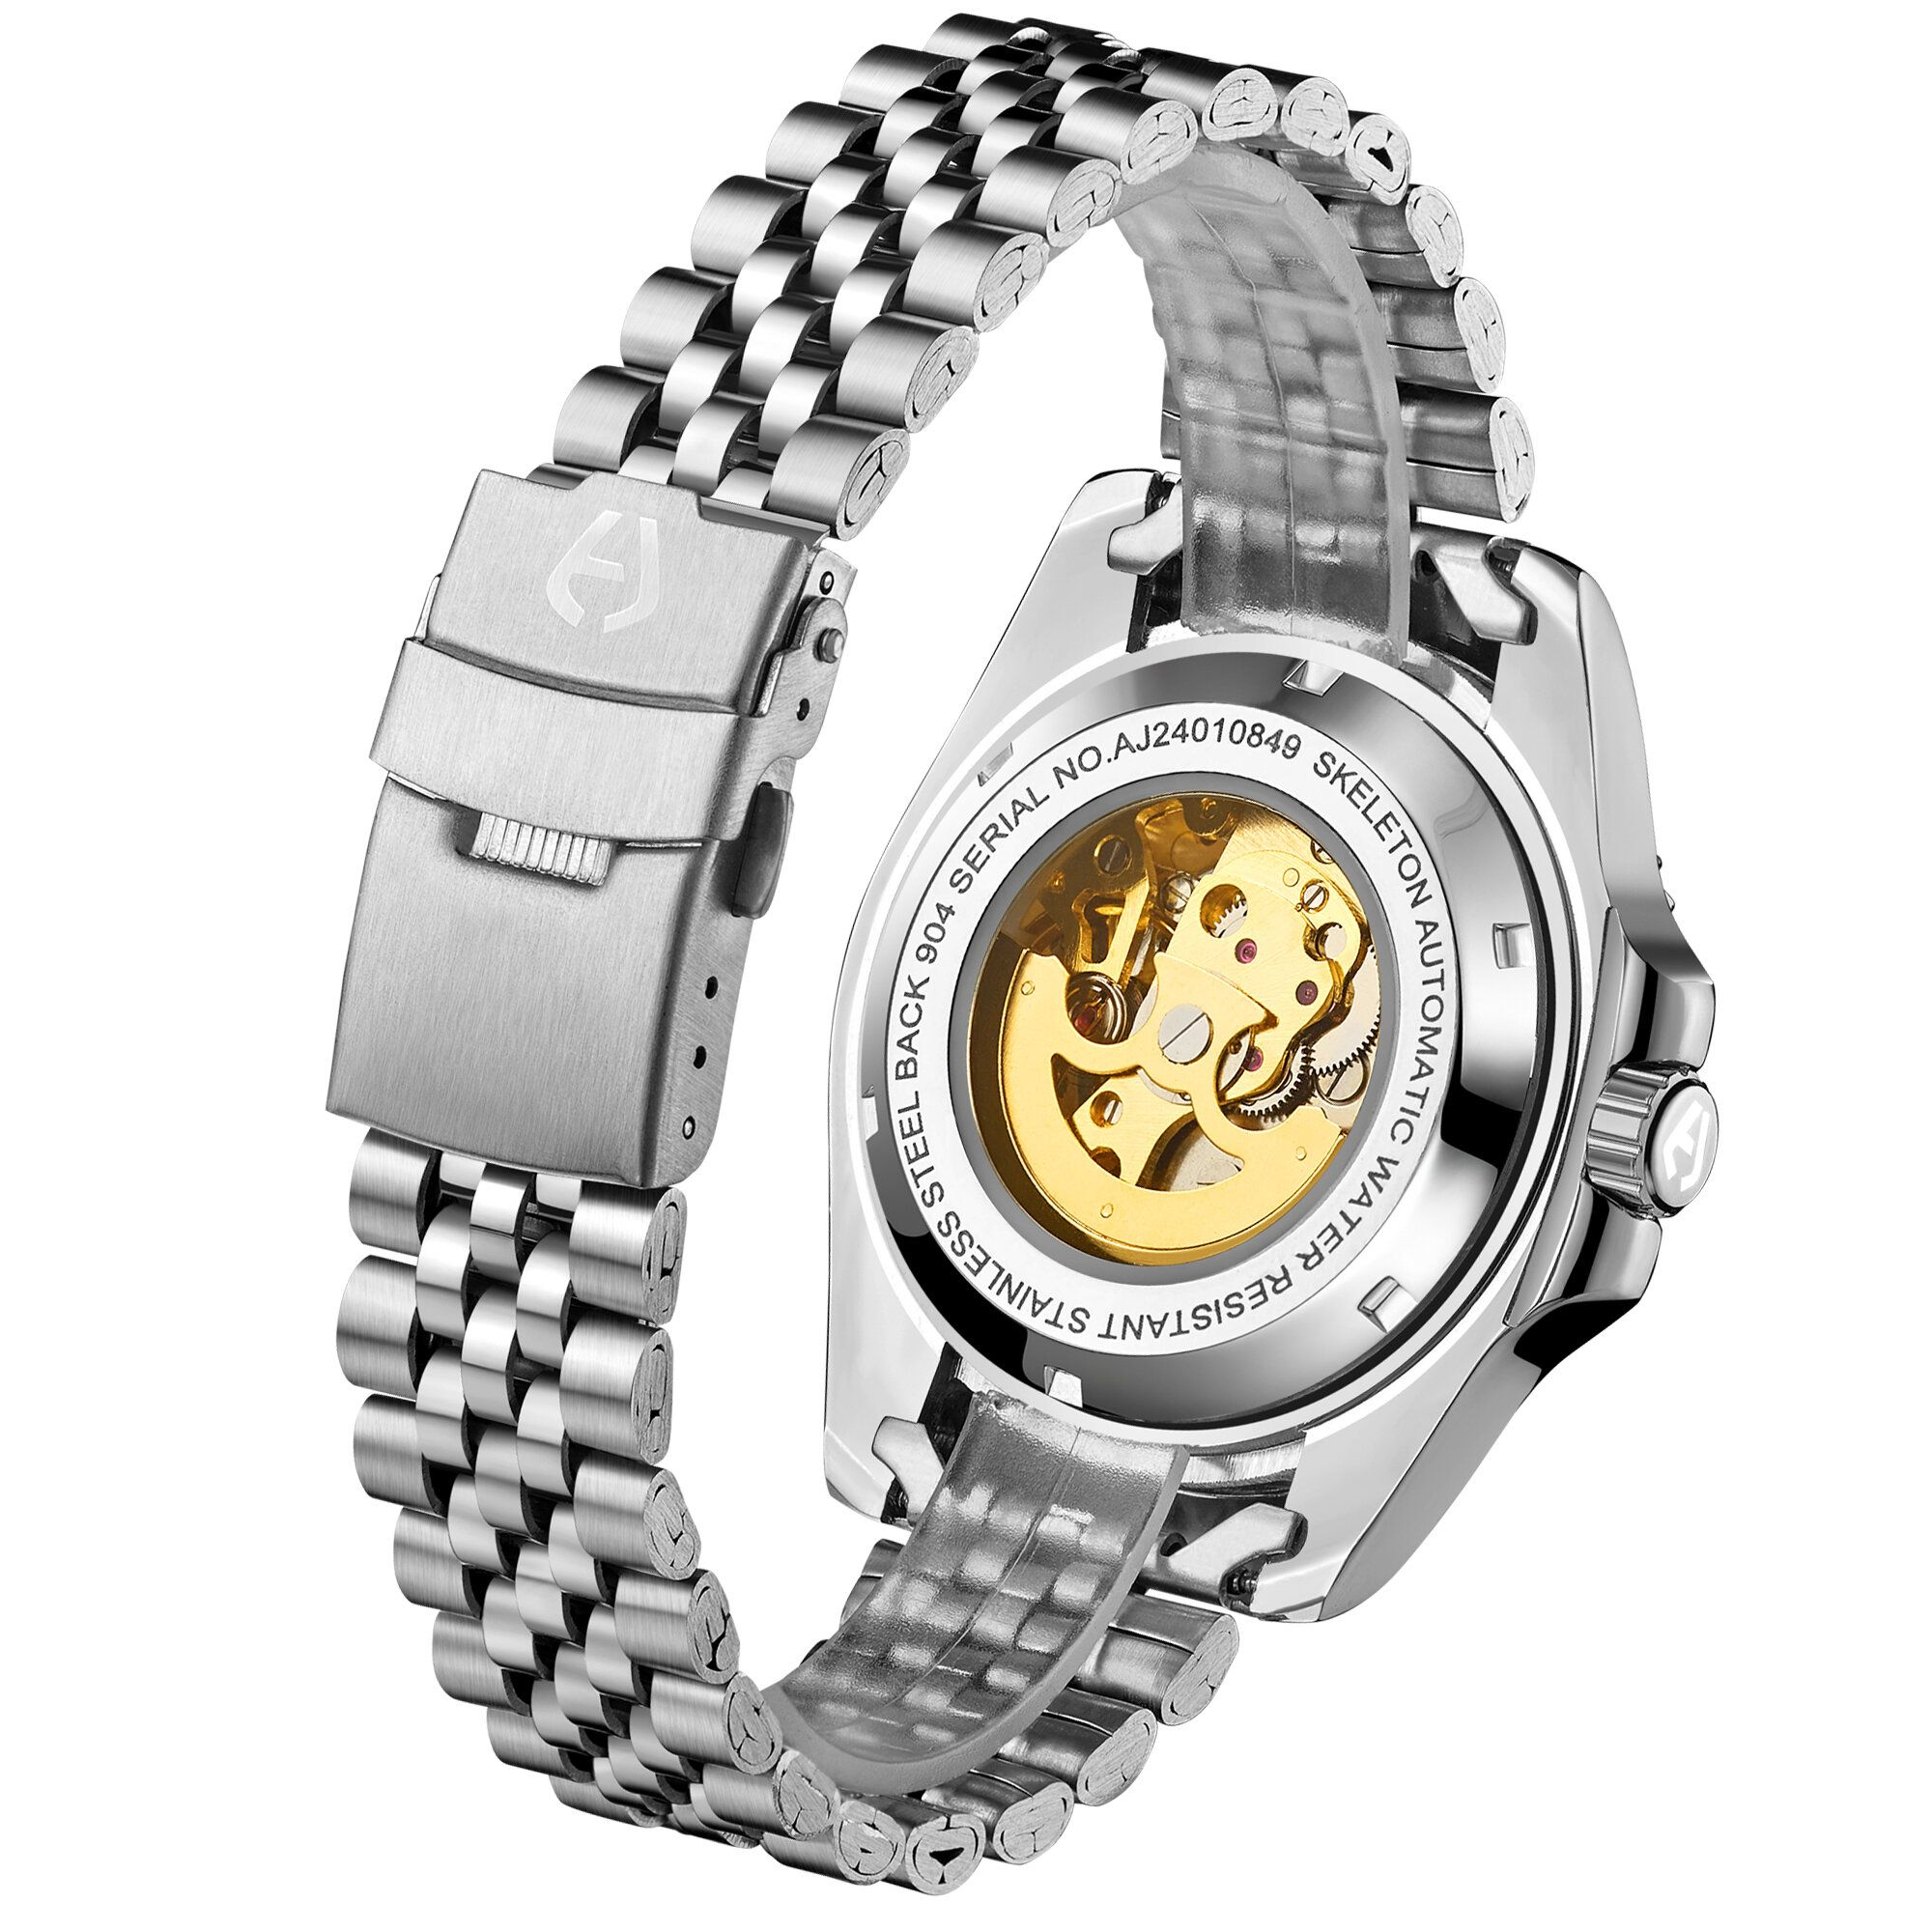 Hand Assembled Anthony James Limited Edition Skeleton Sports Automatic Steel